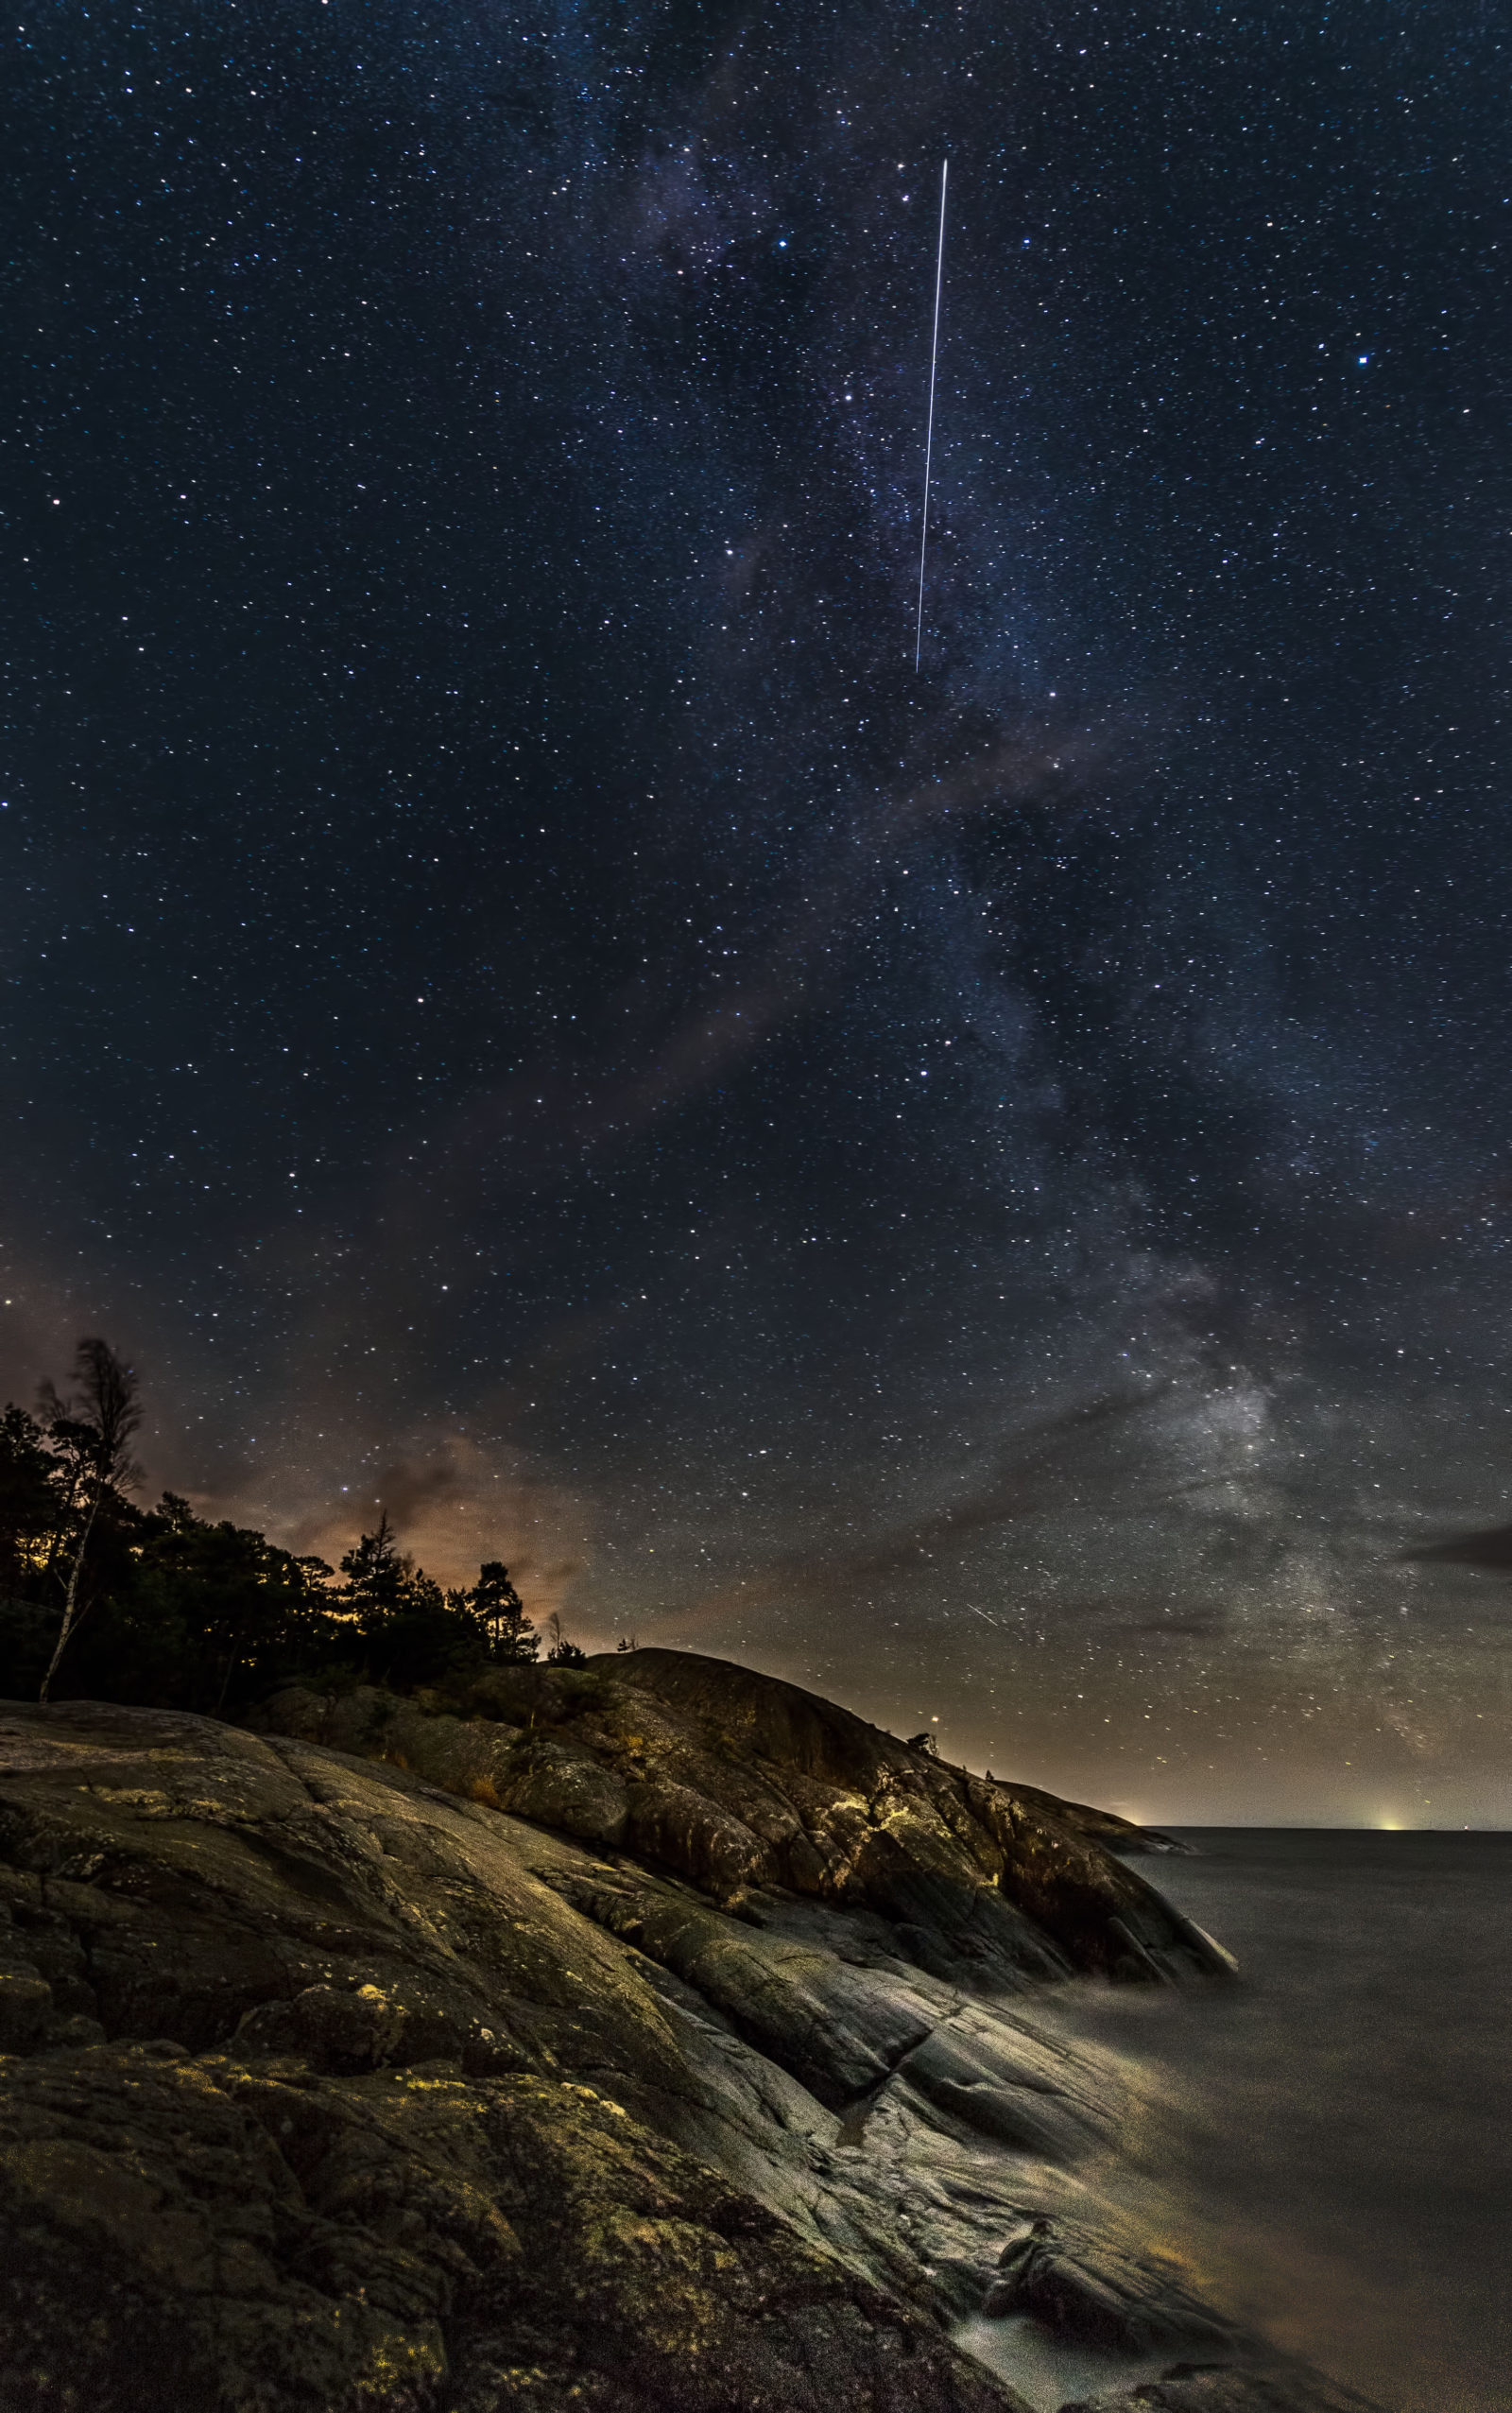 Milky Way and a shooting star